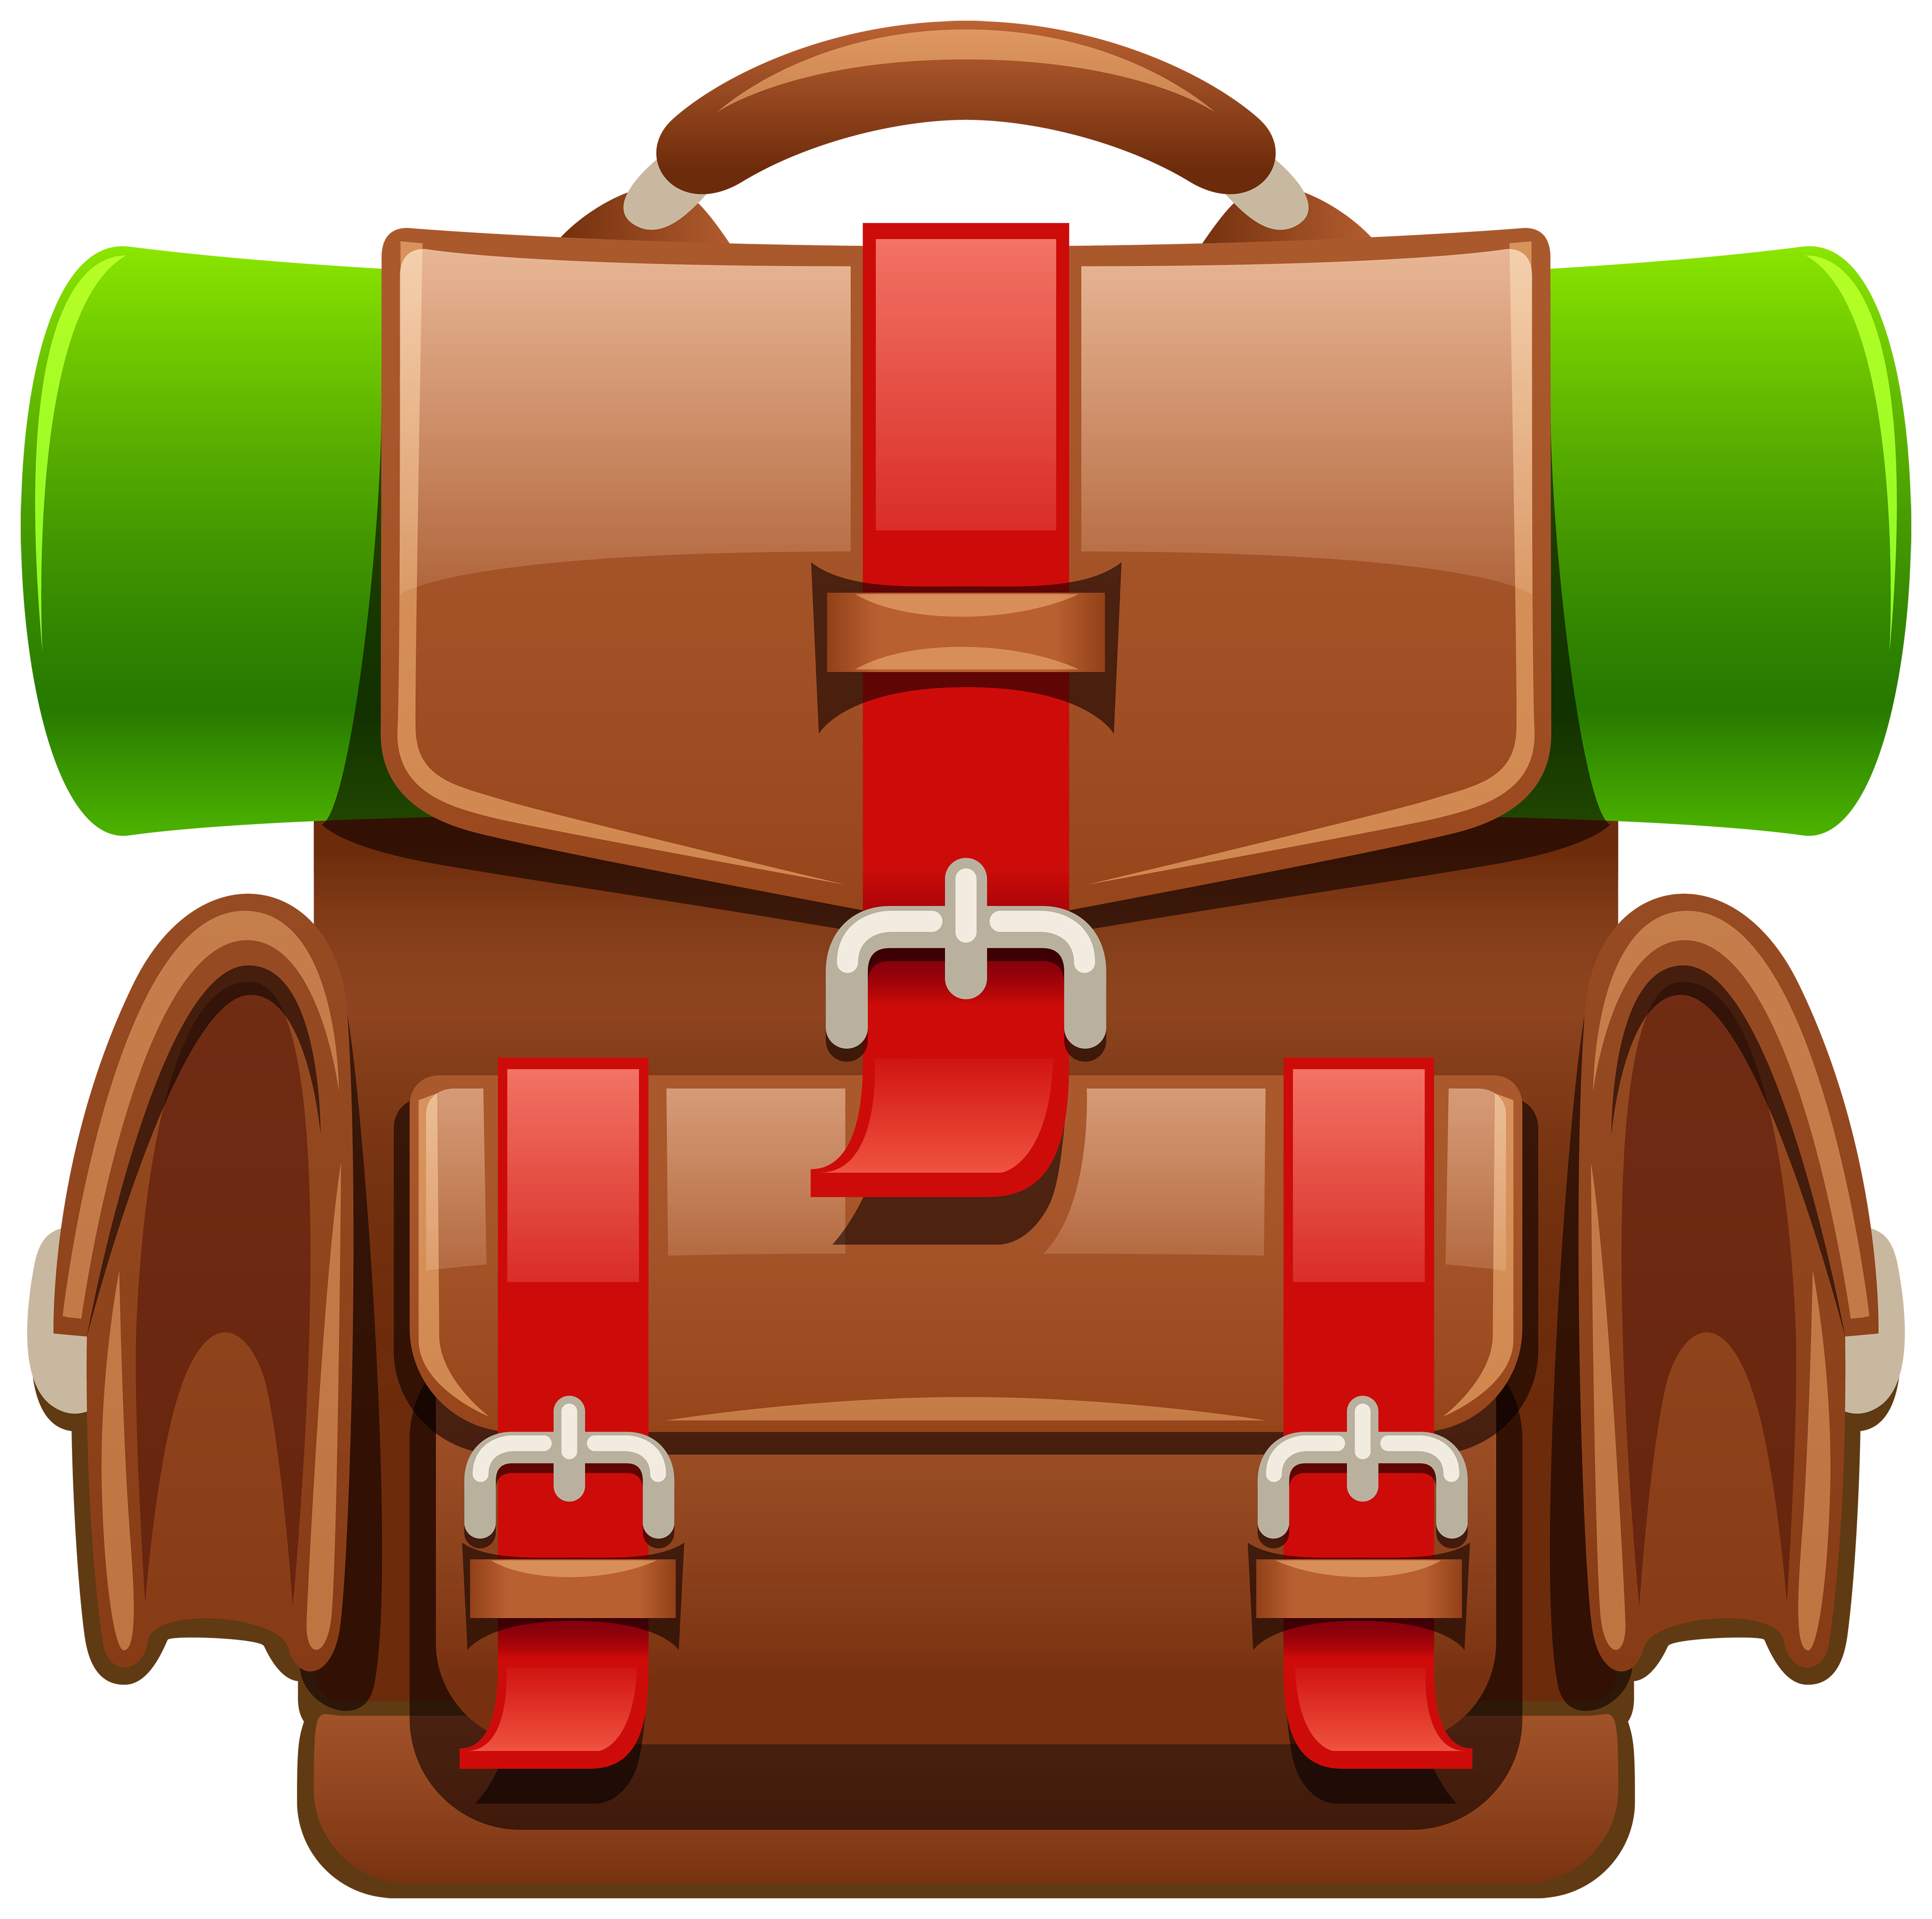 Backpack clipart png. Brown tourist image gallery